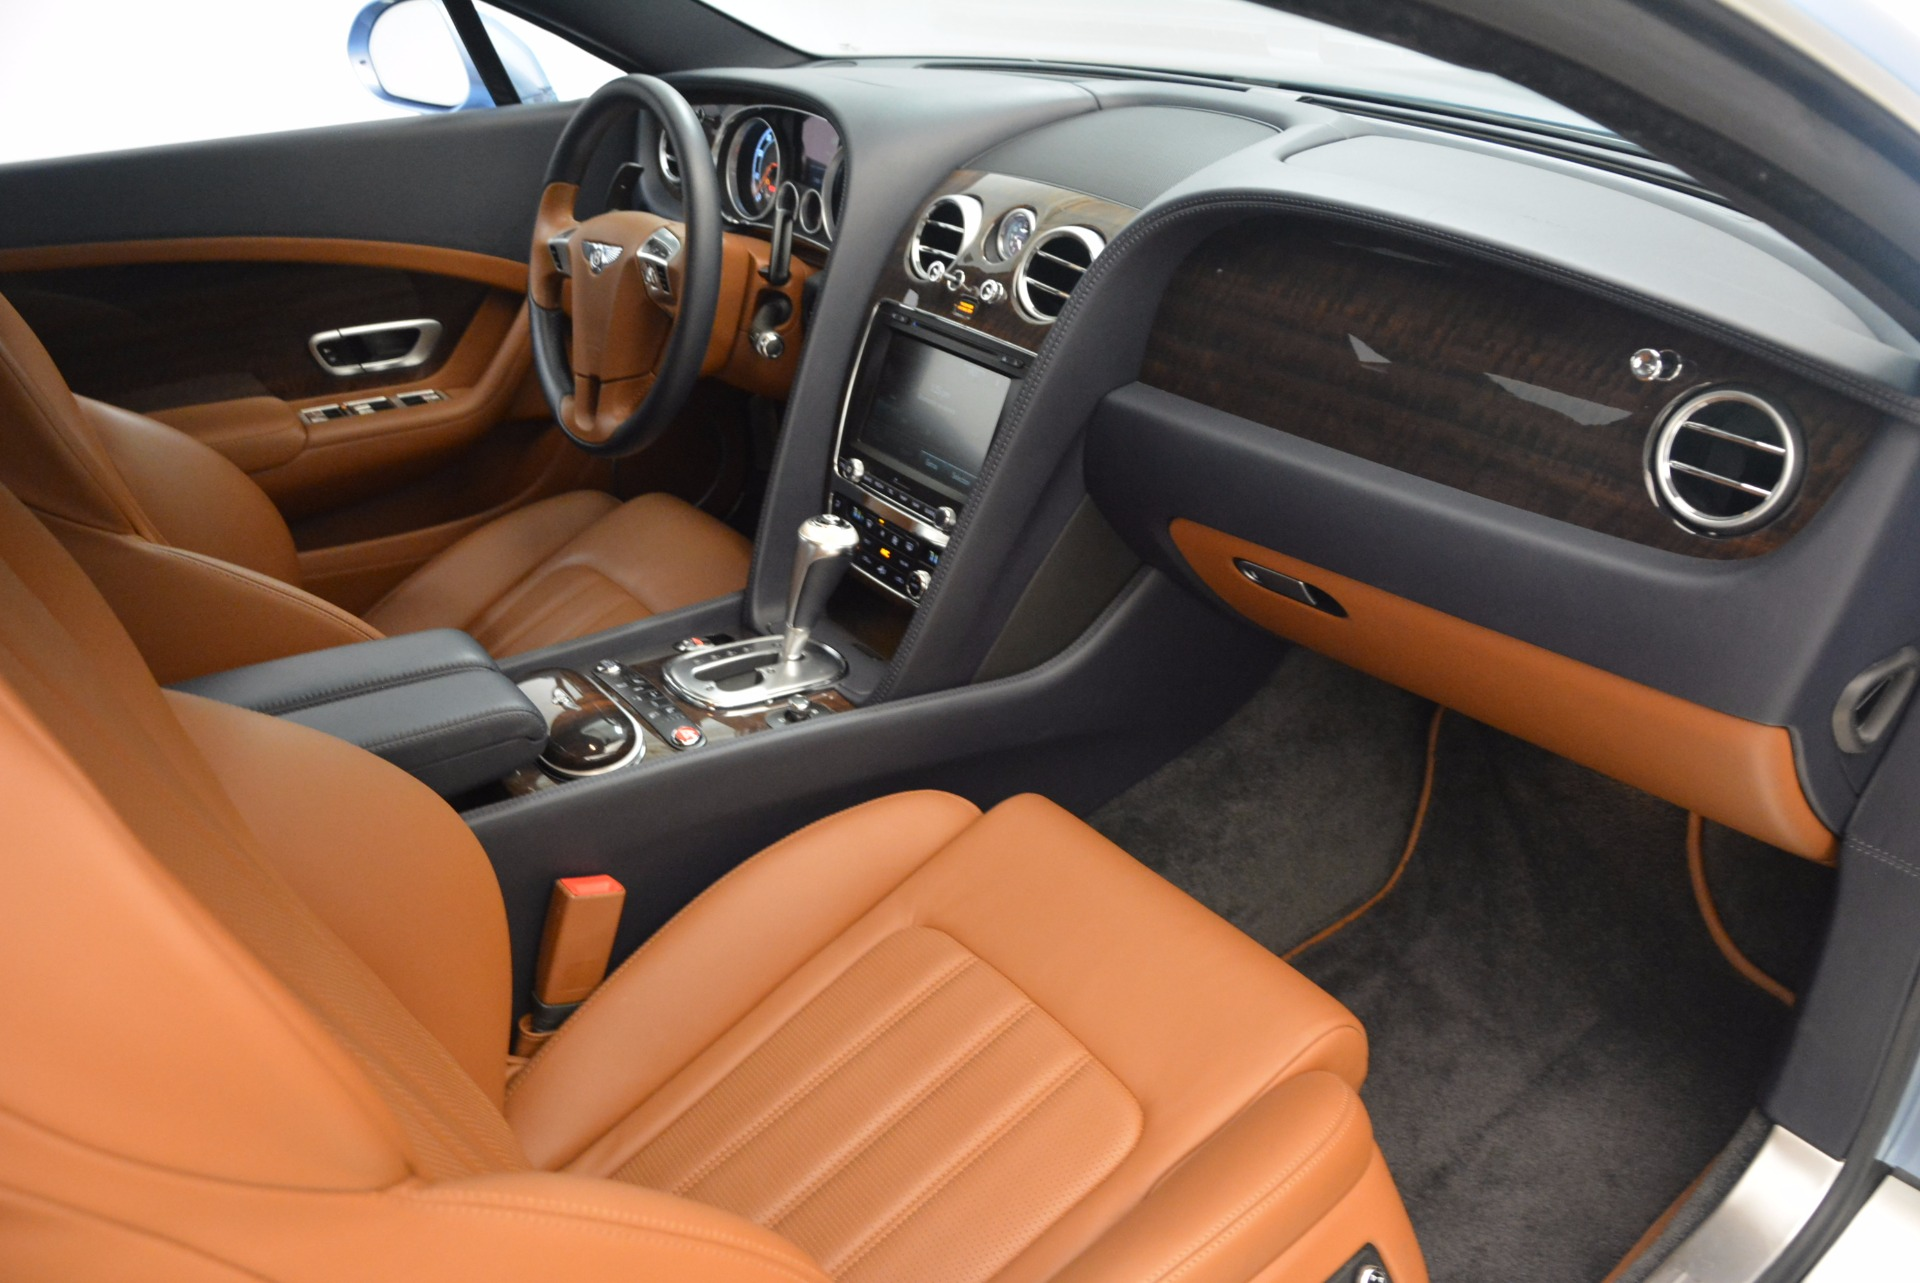 Used 2015 Bentley Continental GT V8 S For Sale In Westport, CT 1507_p33